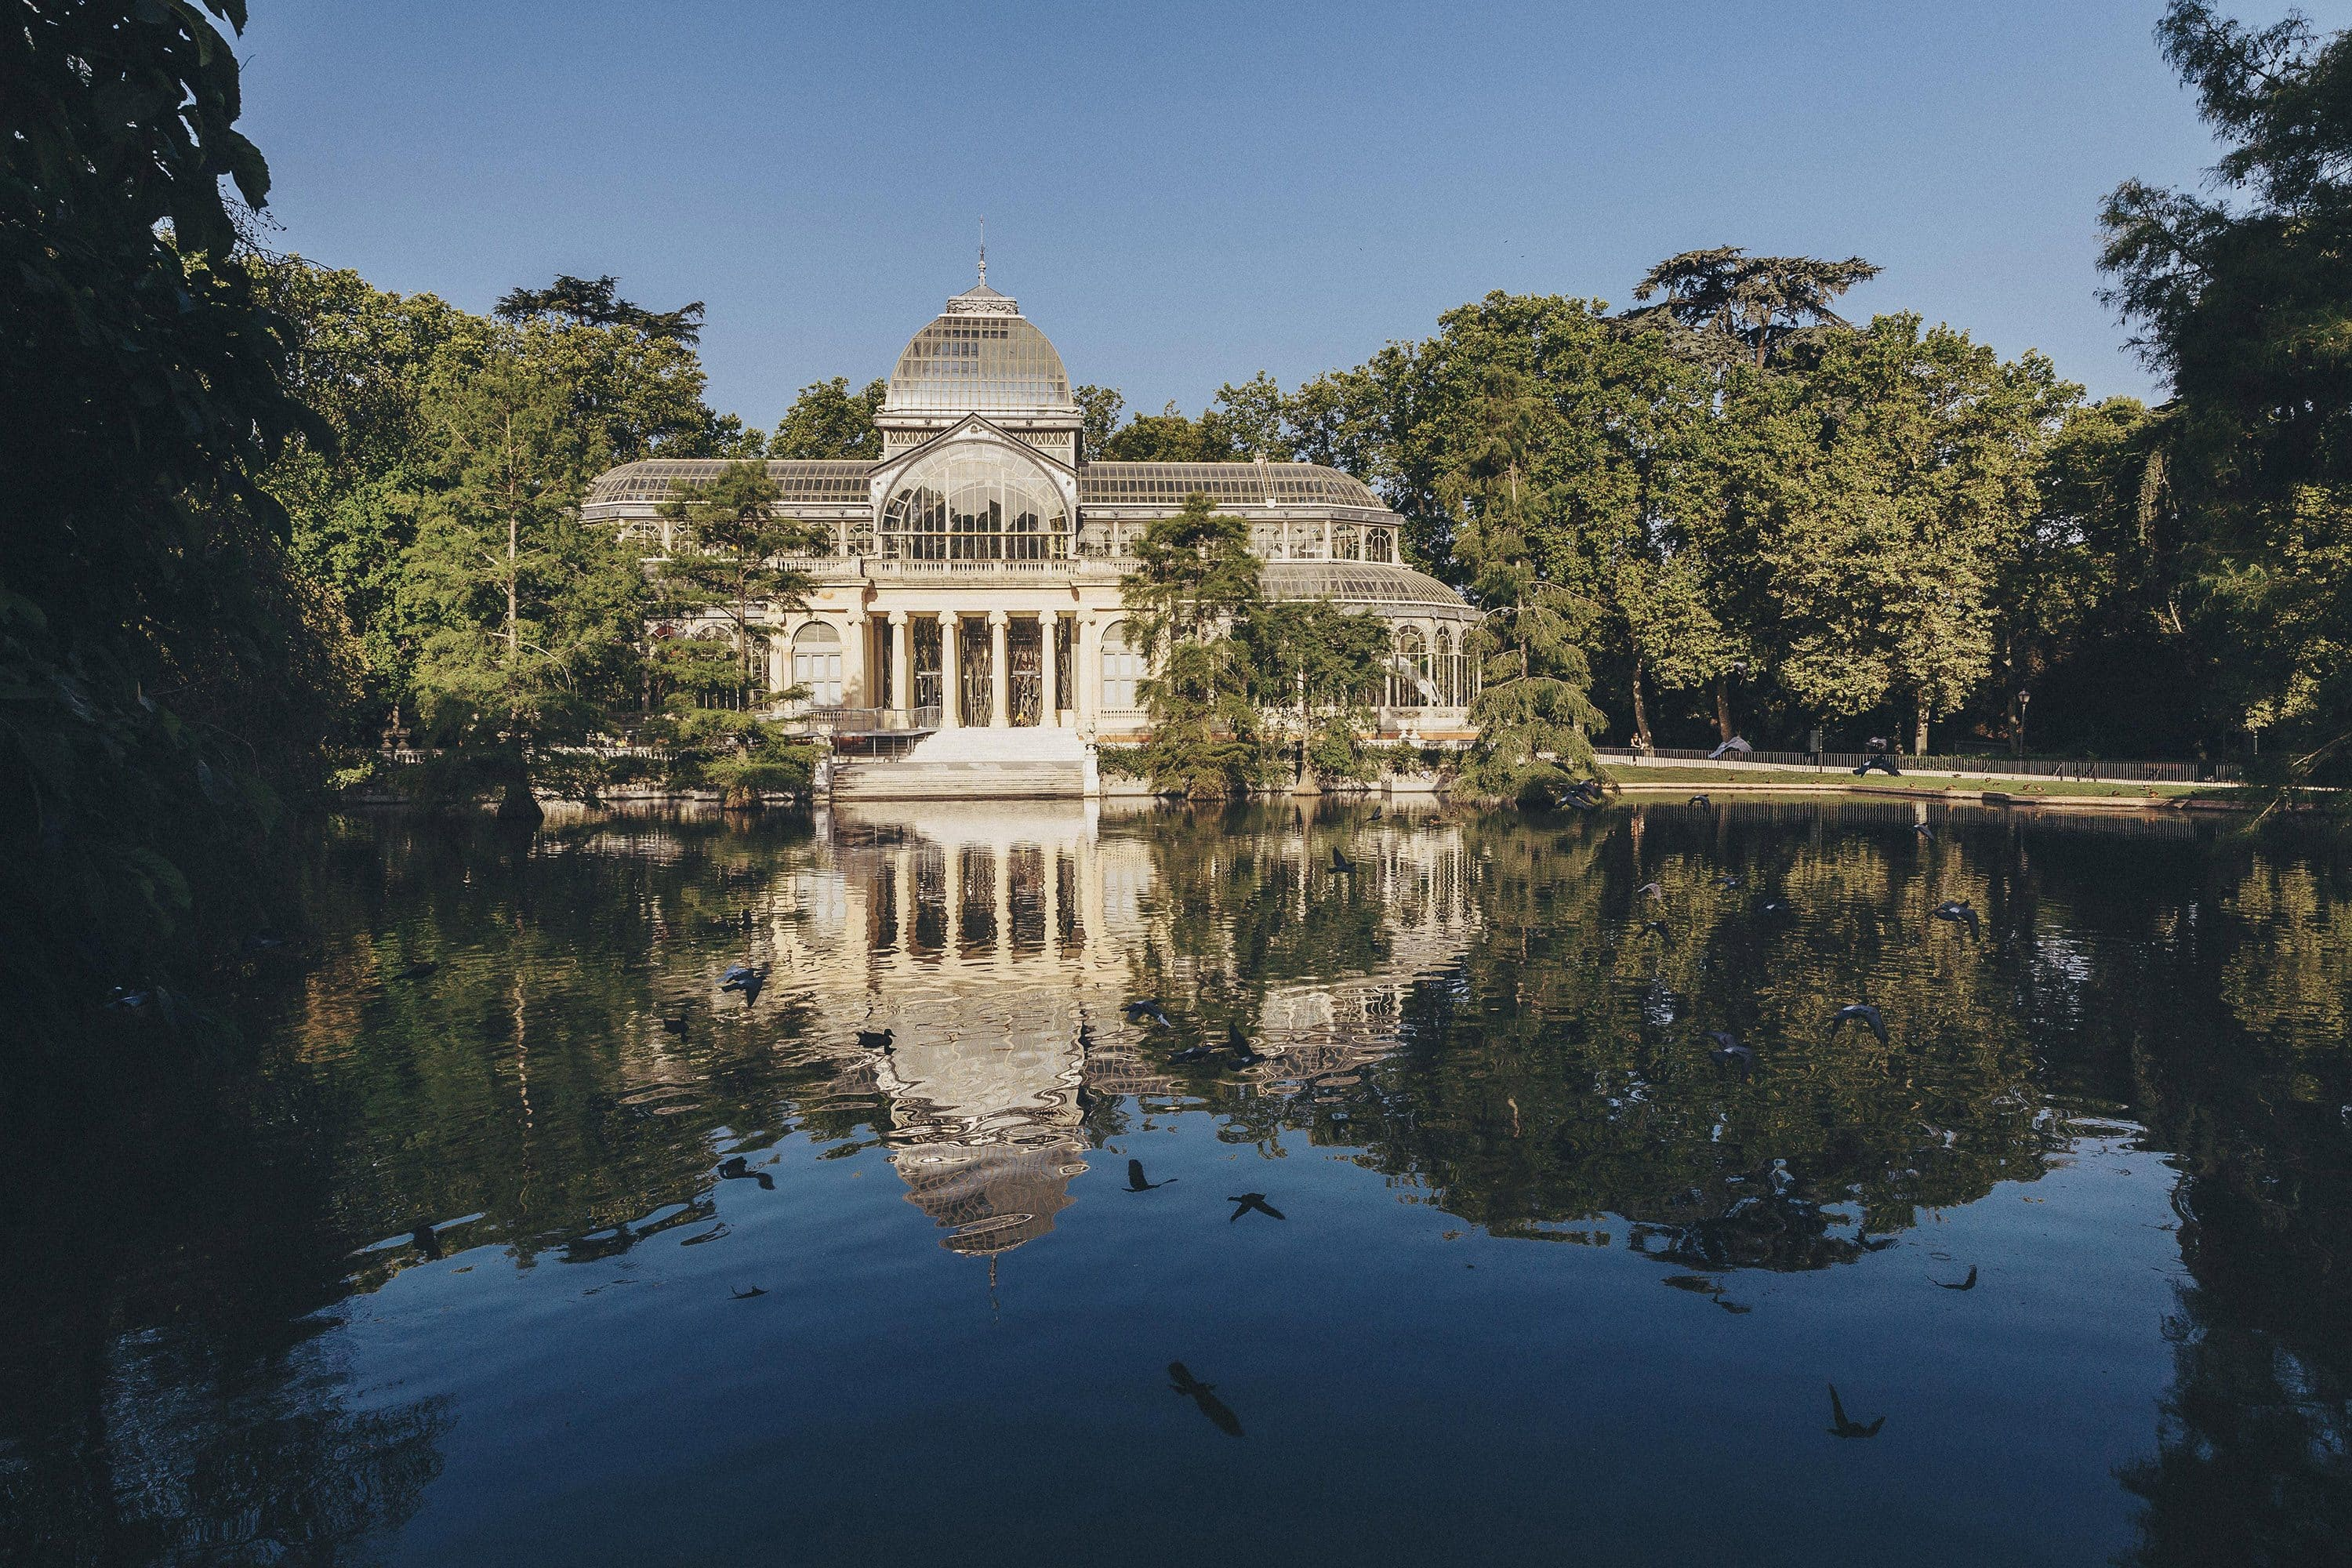 Palacio de Cristal with lake in foreground, Madrid